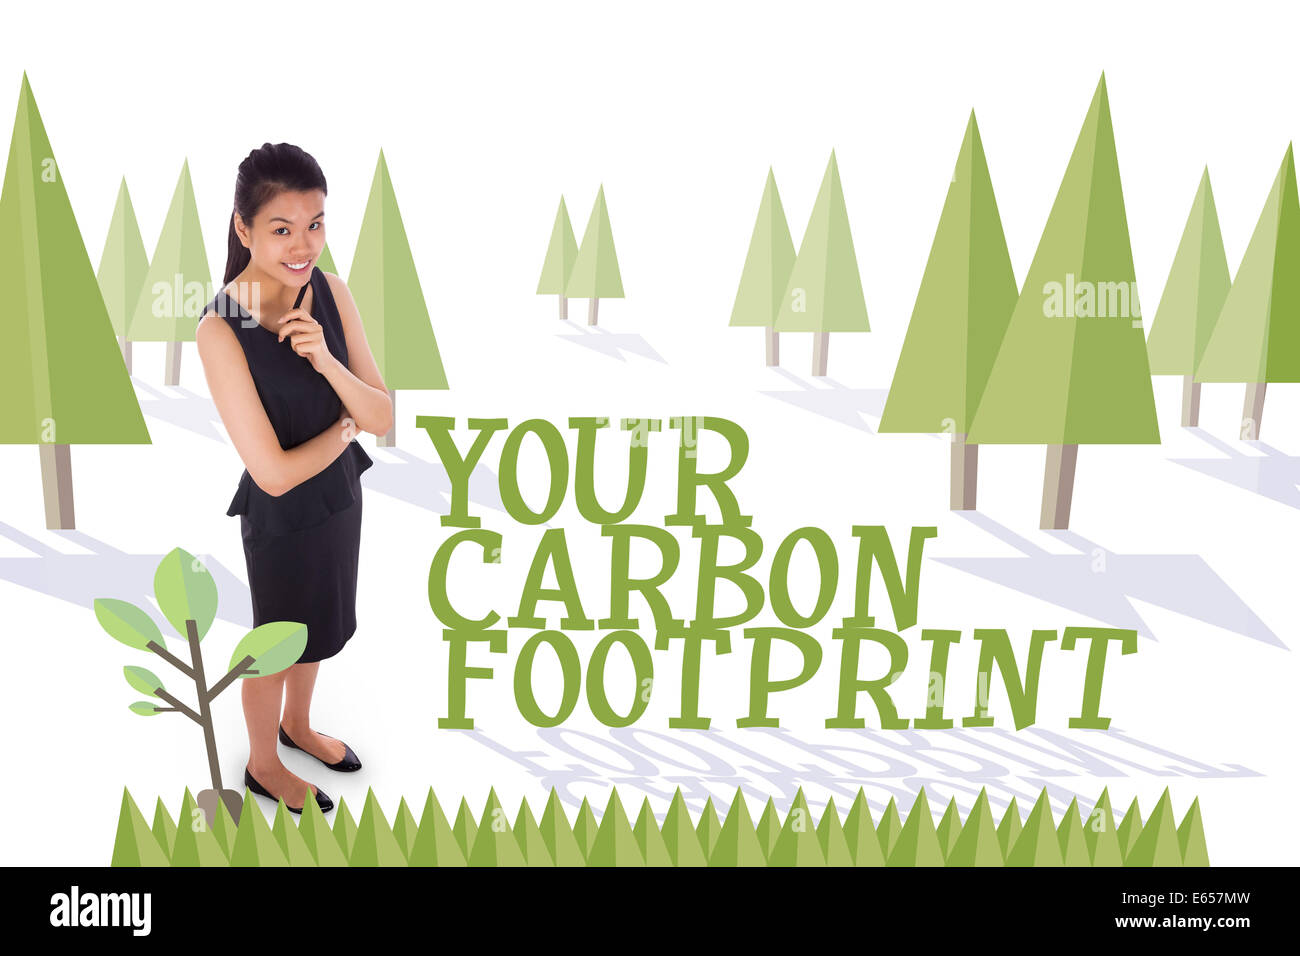 Your carbon footprint against forest with trees - Stock Image